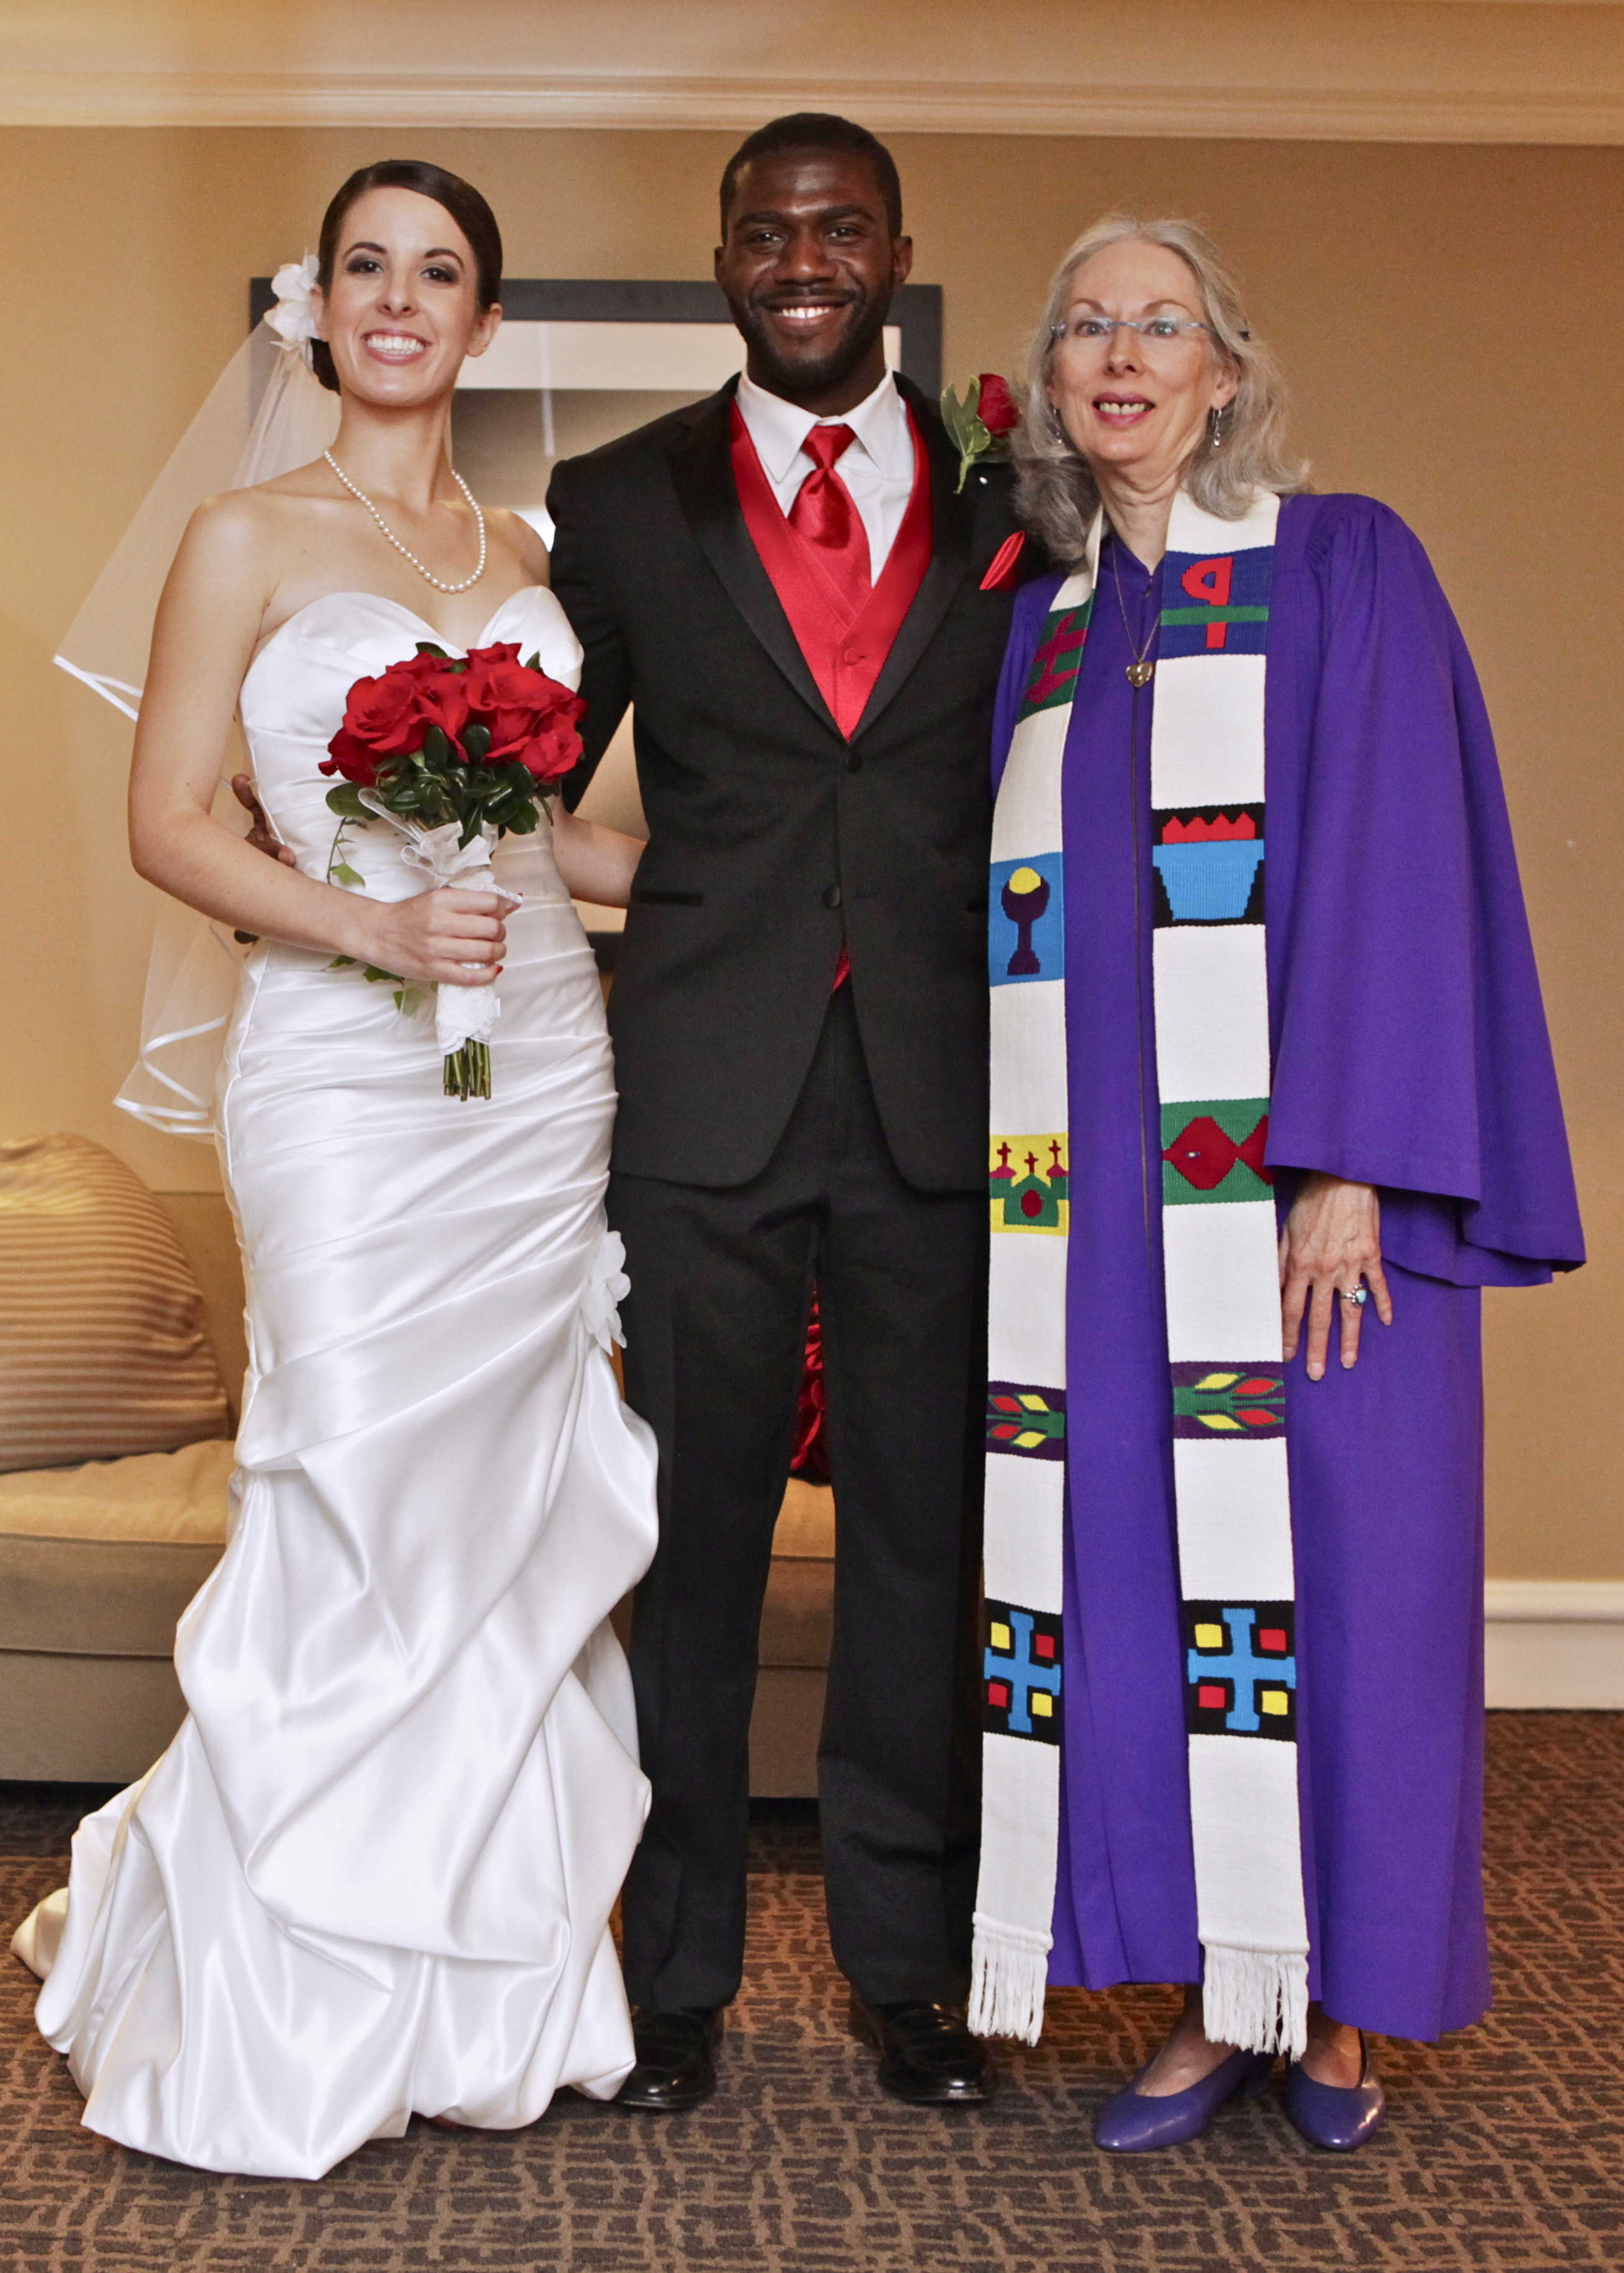 David and Raebekah and Rev Janice Rost